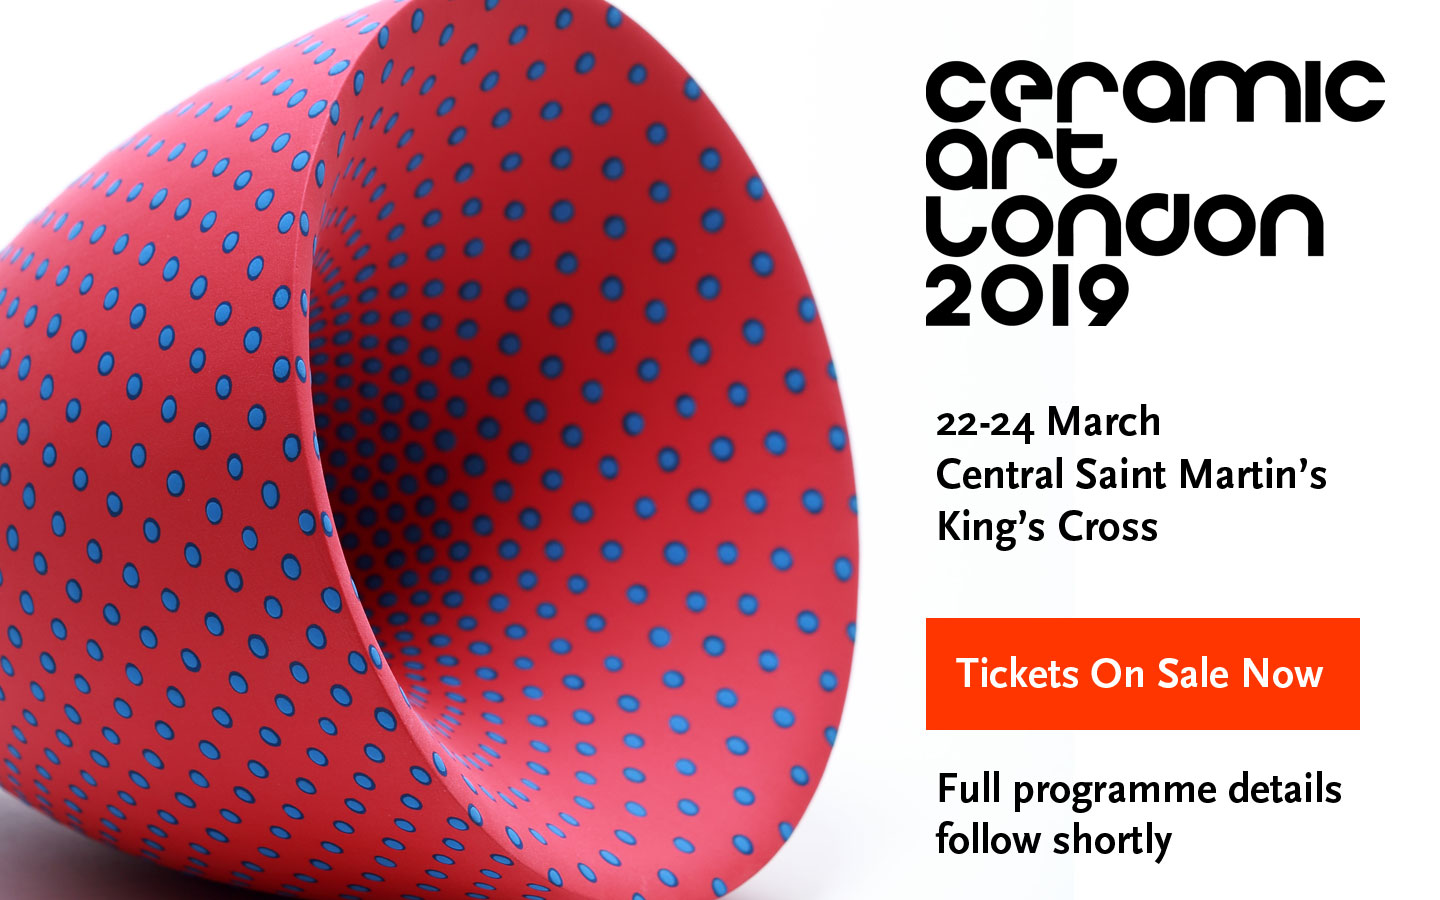 Trip to Ceramic Art London – Sat 23rd March 2019